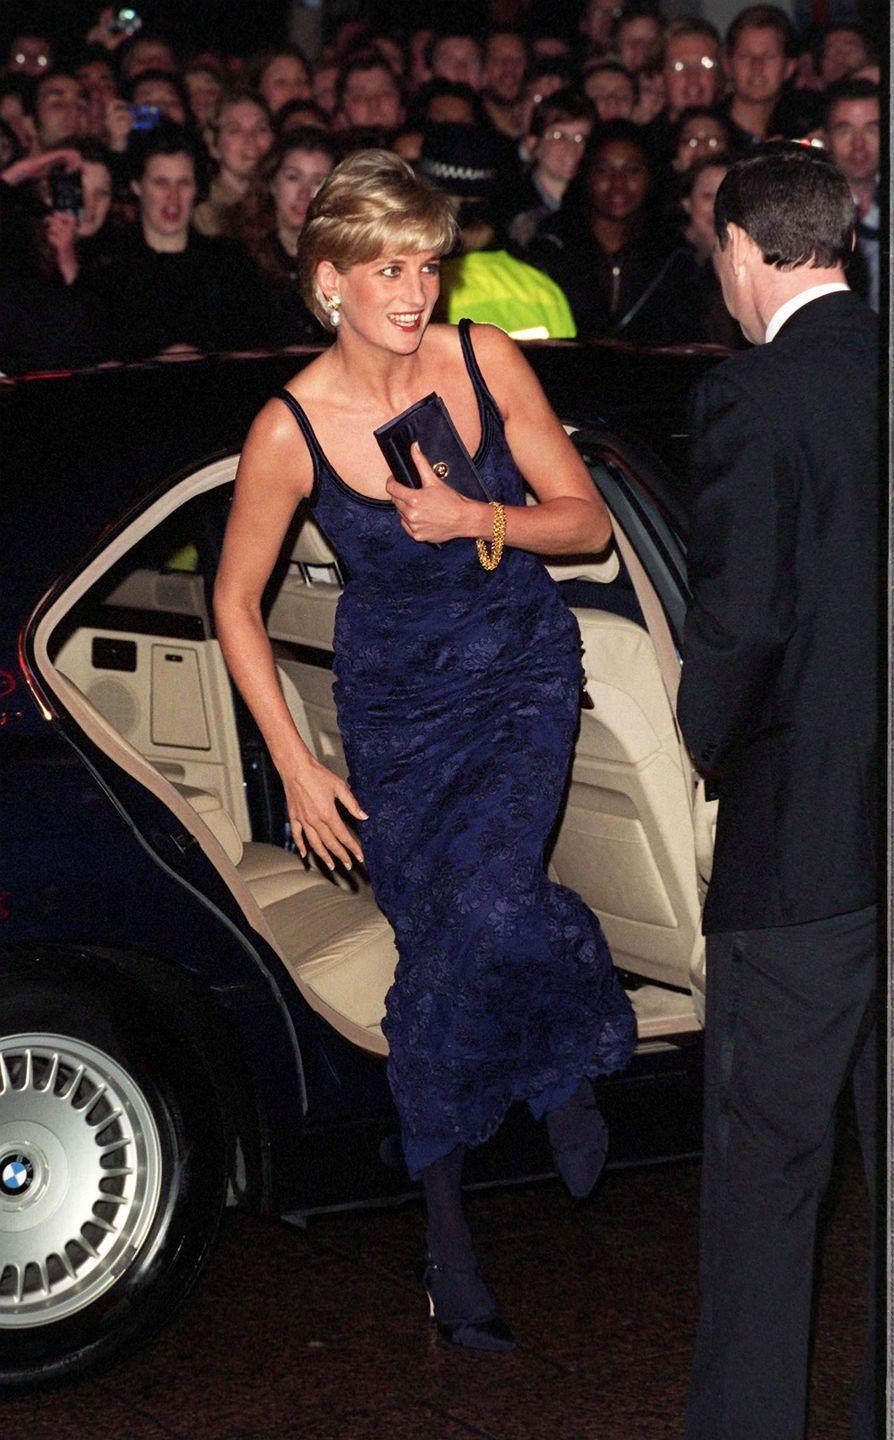 <p>Princess Di used her clutches to cover her cleavage as she got out of cars. Why? It prevented any prying photographers from snapping a revealing pic of her. </p>